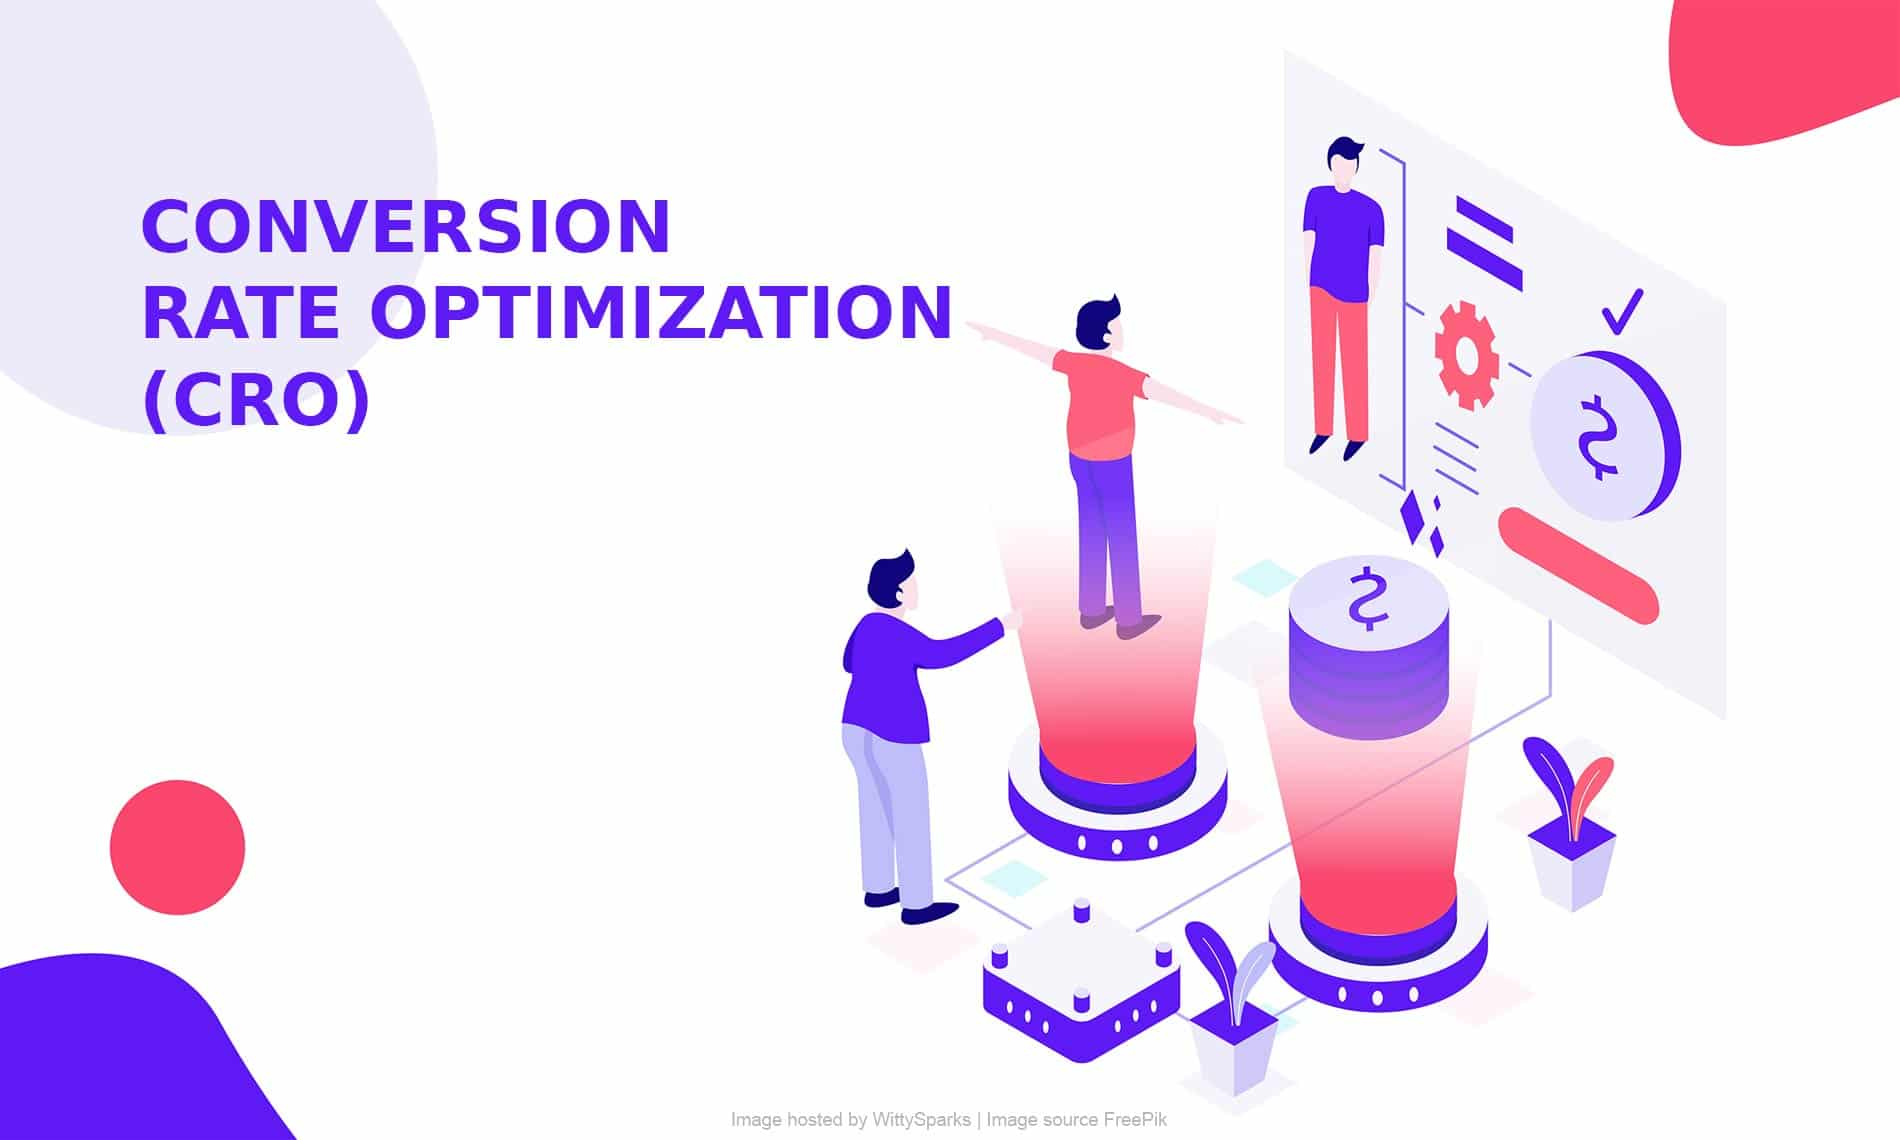 Conversion rate optimization (CRO) in online marketing